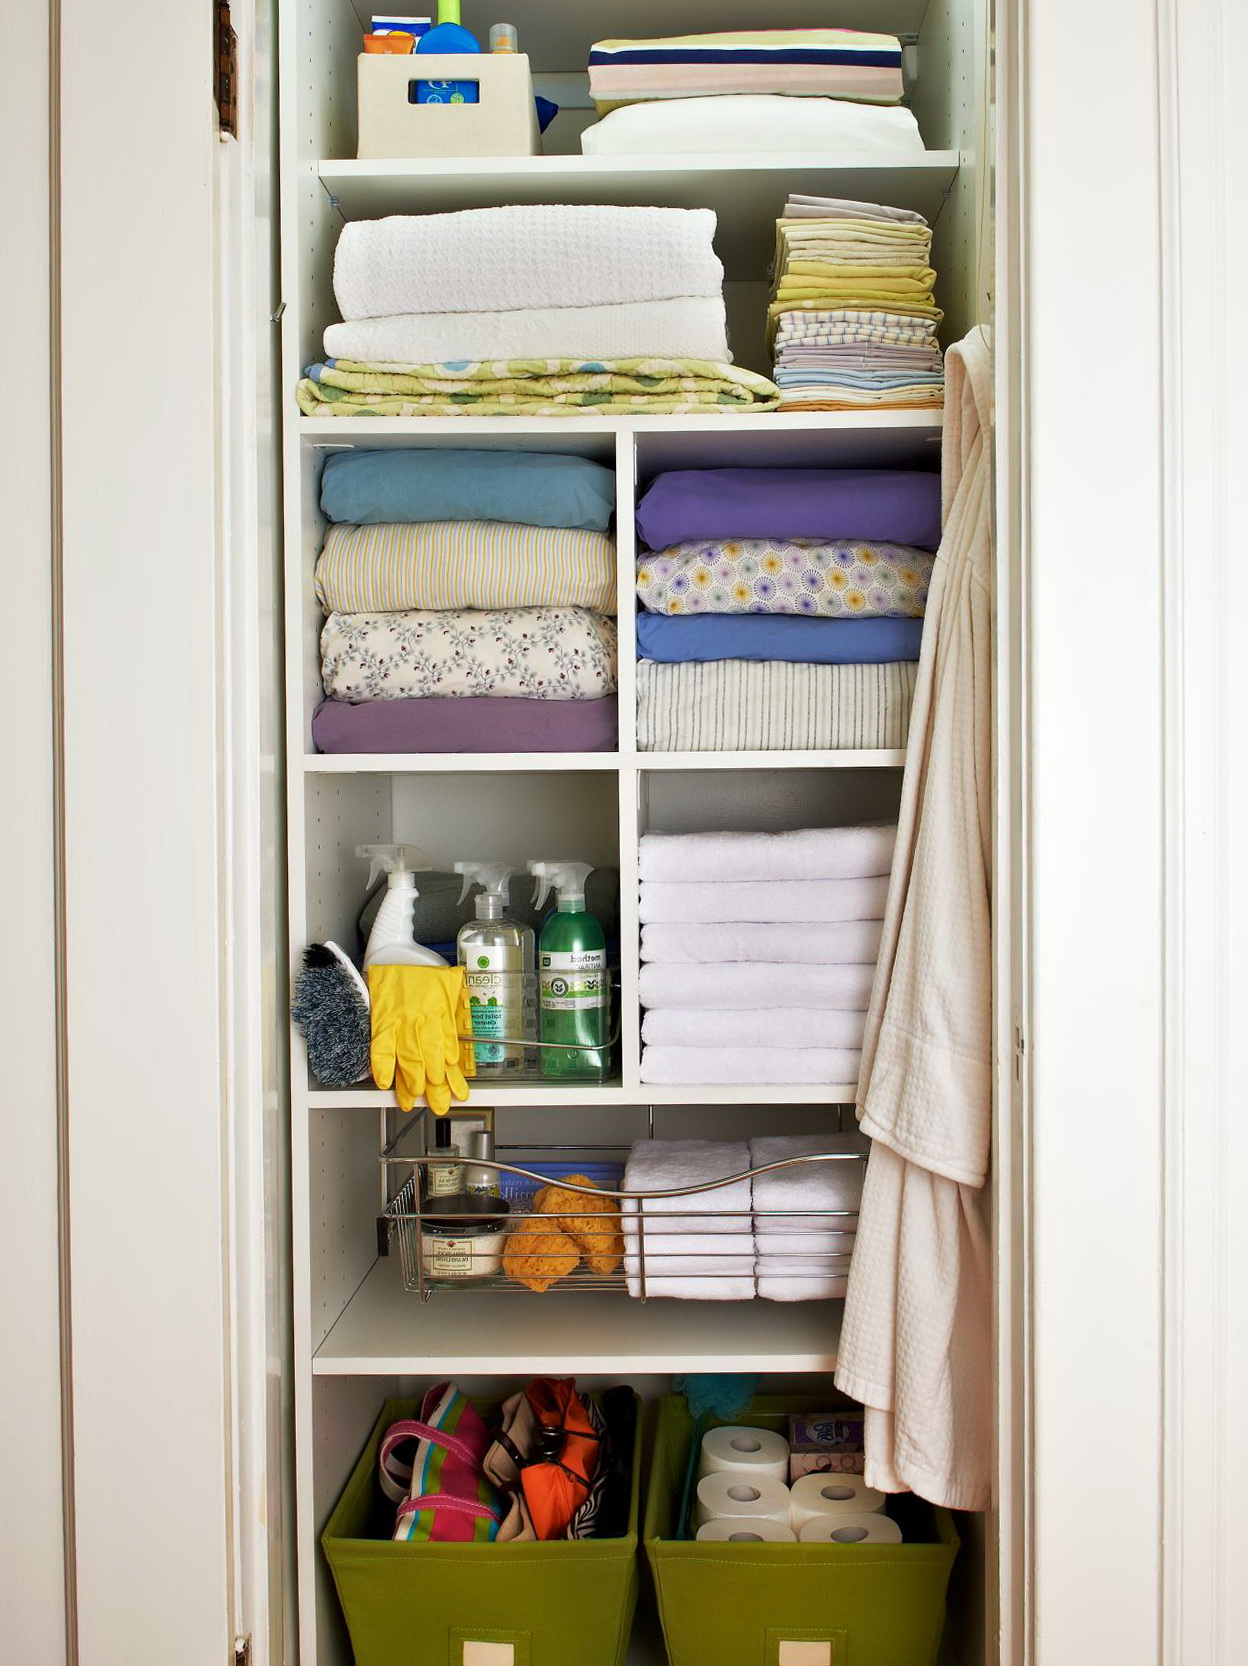 Linen Closet Organizer Systems Linen Closet Organizer Ideas Home Design Ideas